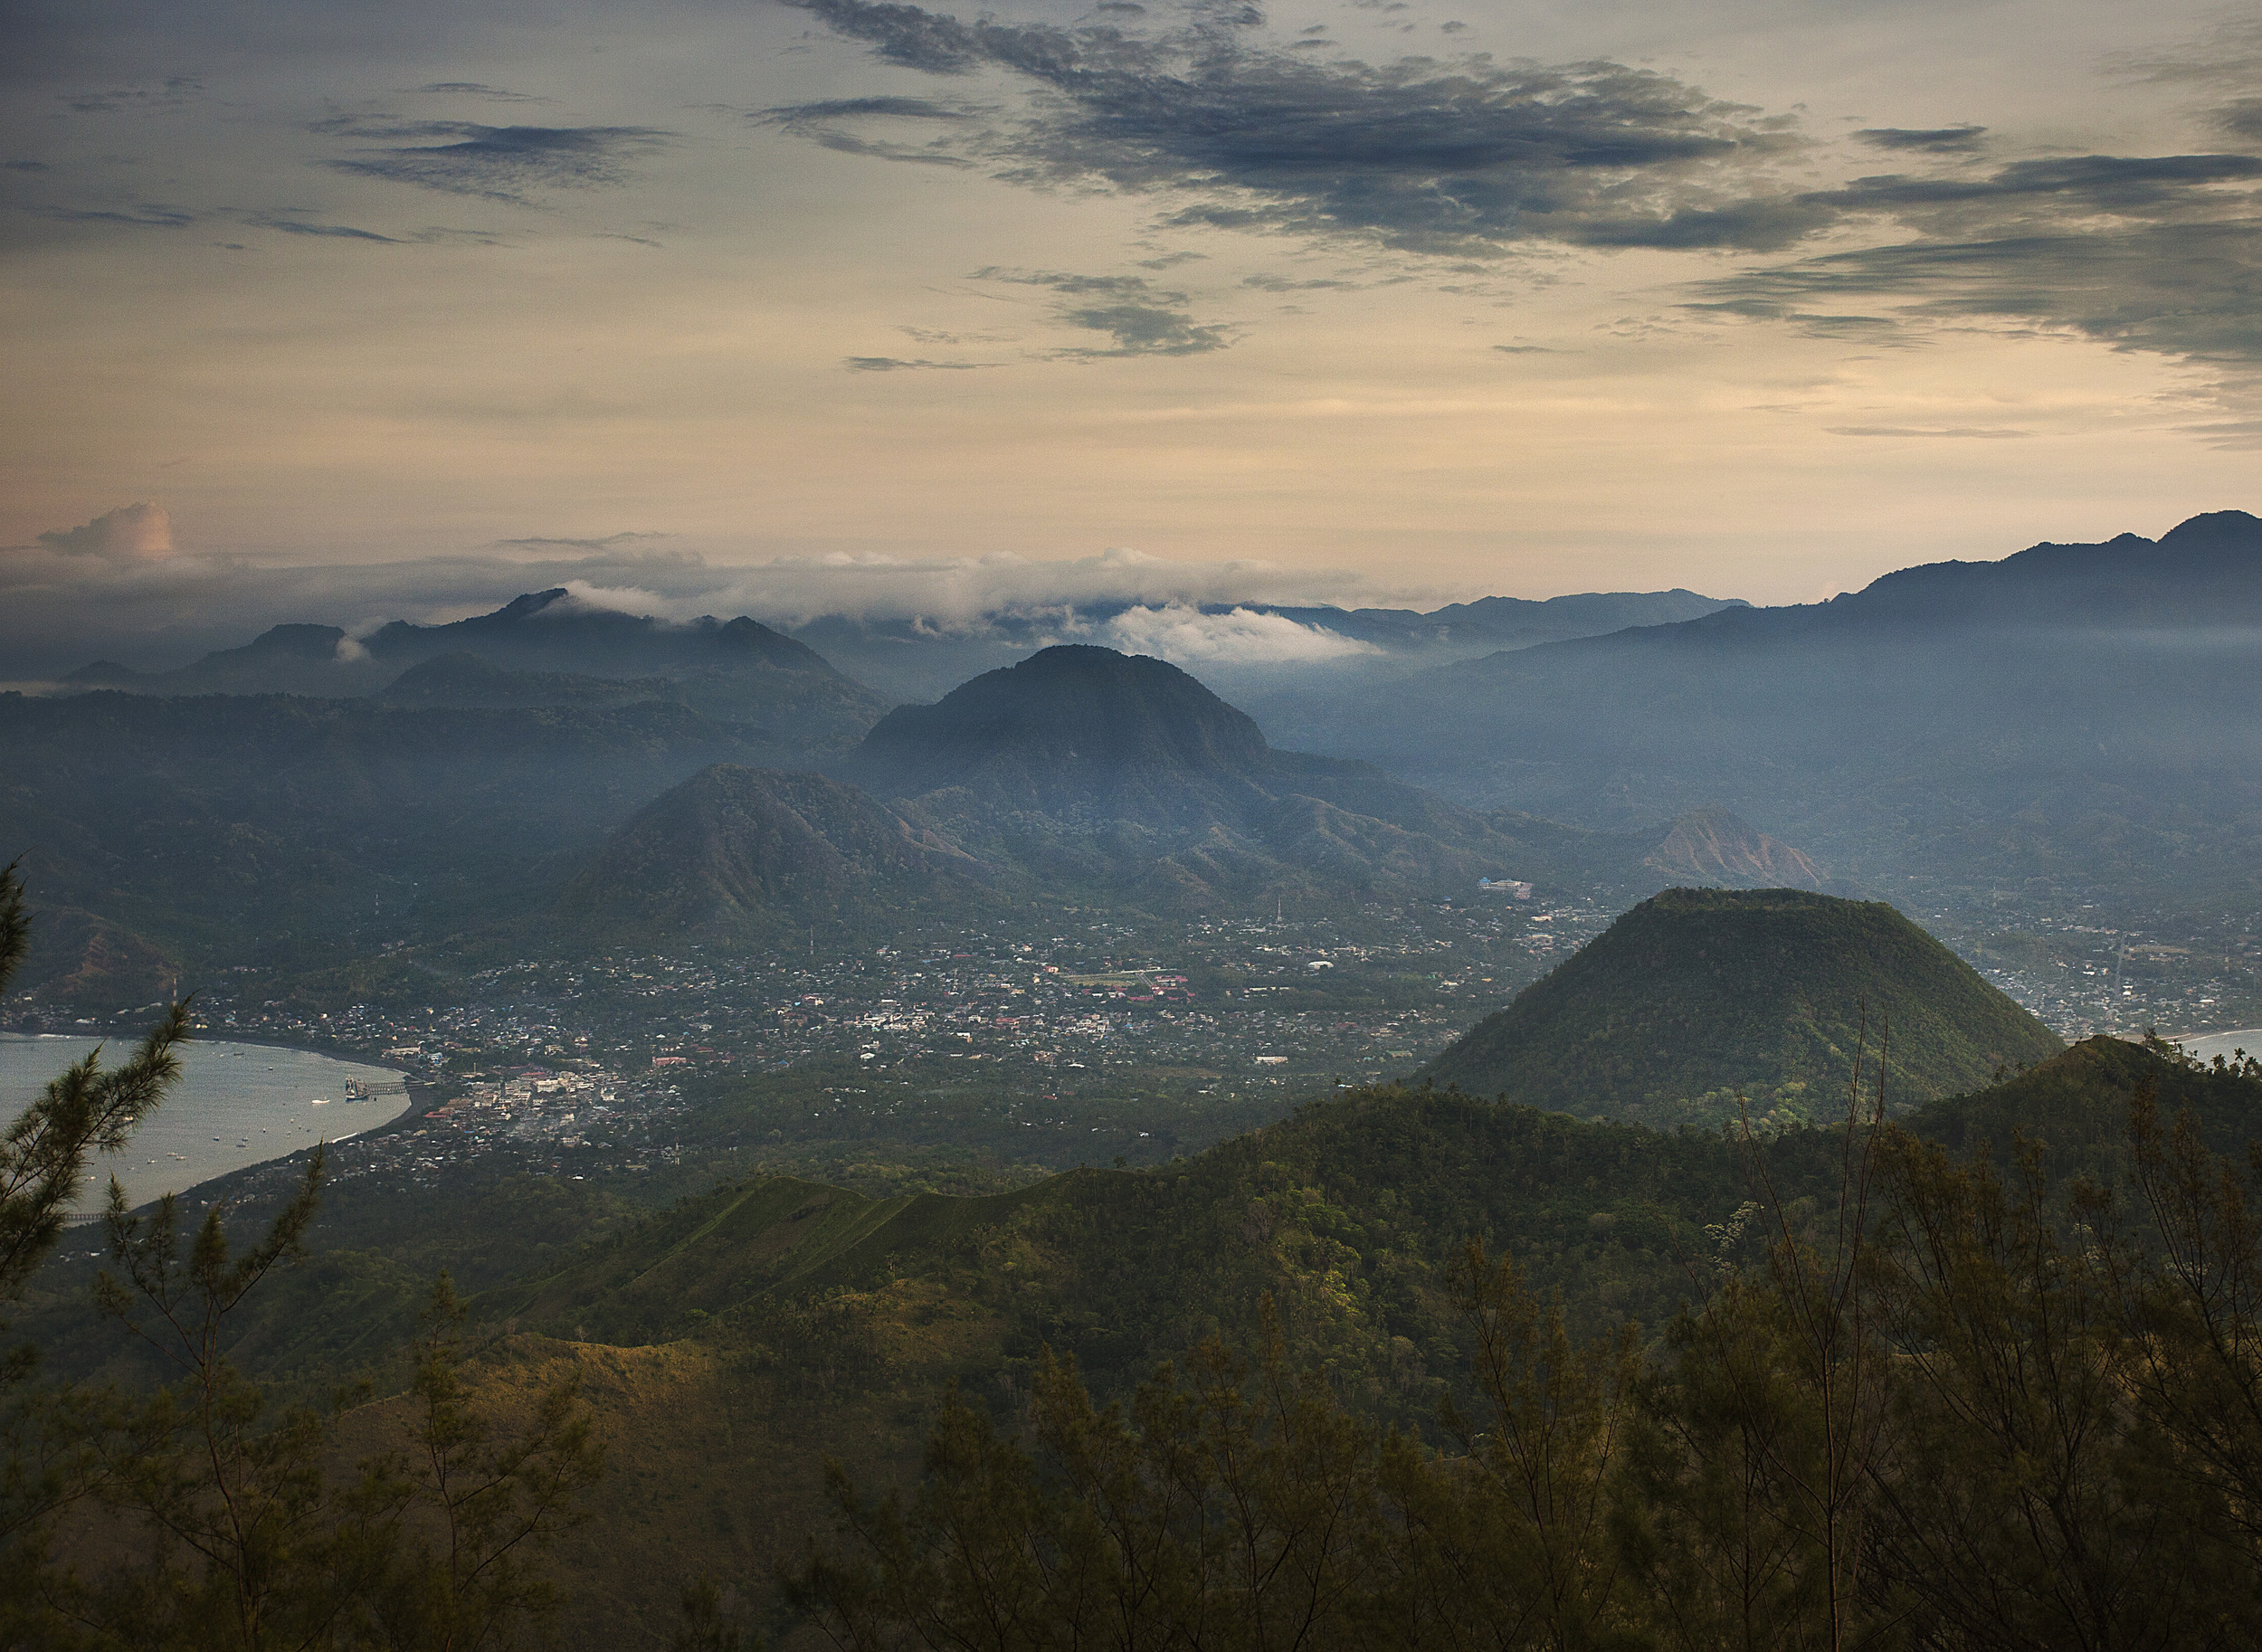 The view of Ende from the summit of Gunung Iya